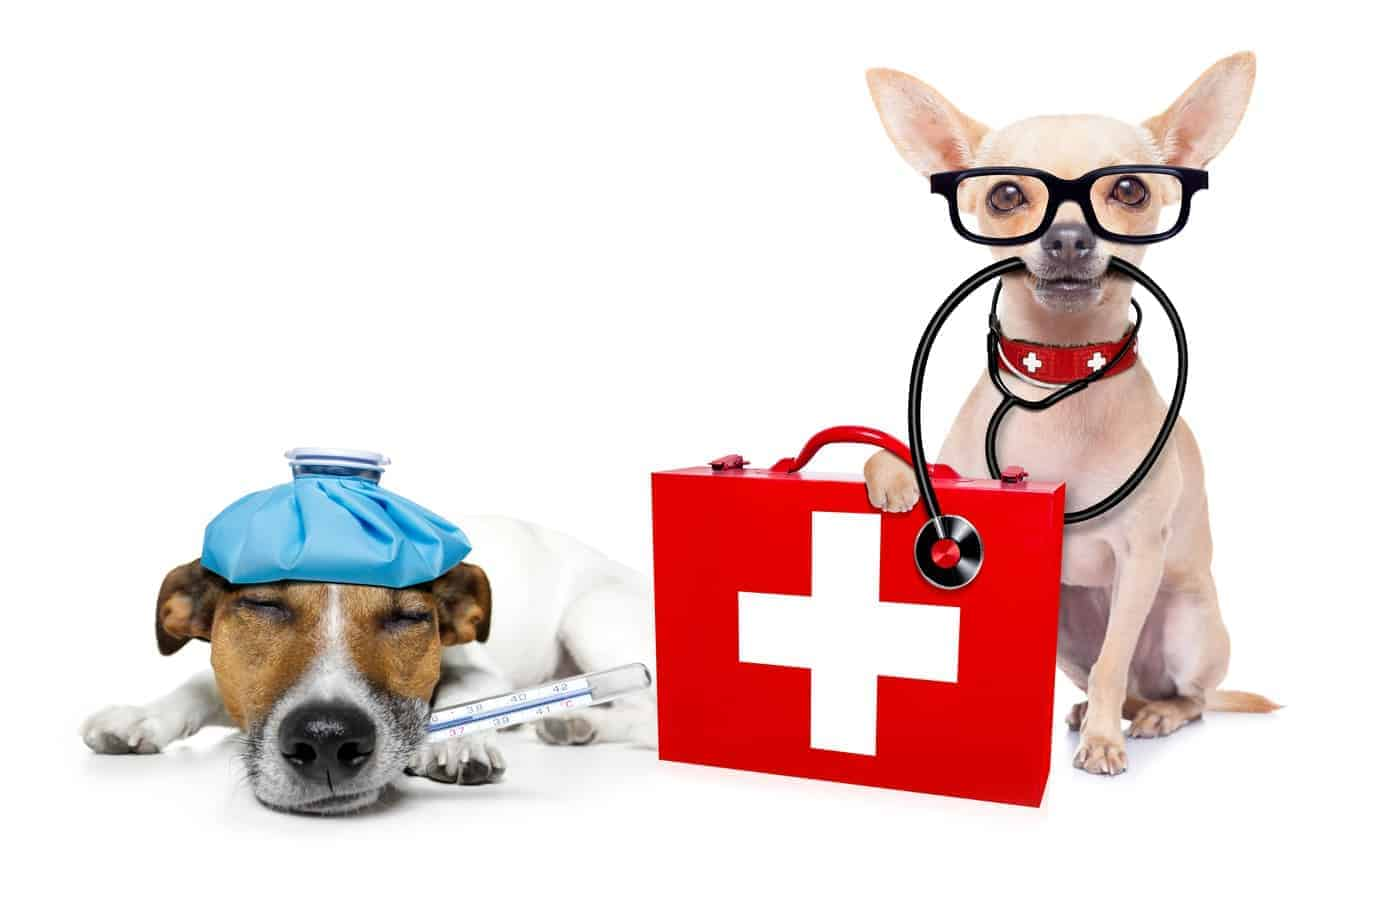 Plan ahead so you are ready in a dog medical emergency. Start by preparing a first aid kit. Jack Russell terrier with thermostat lies next to chihuahua wearing stethescope with paw on first aid kit.